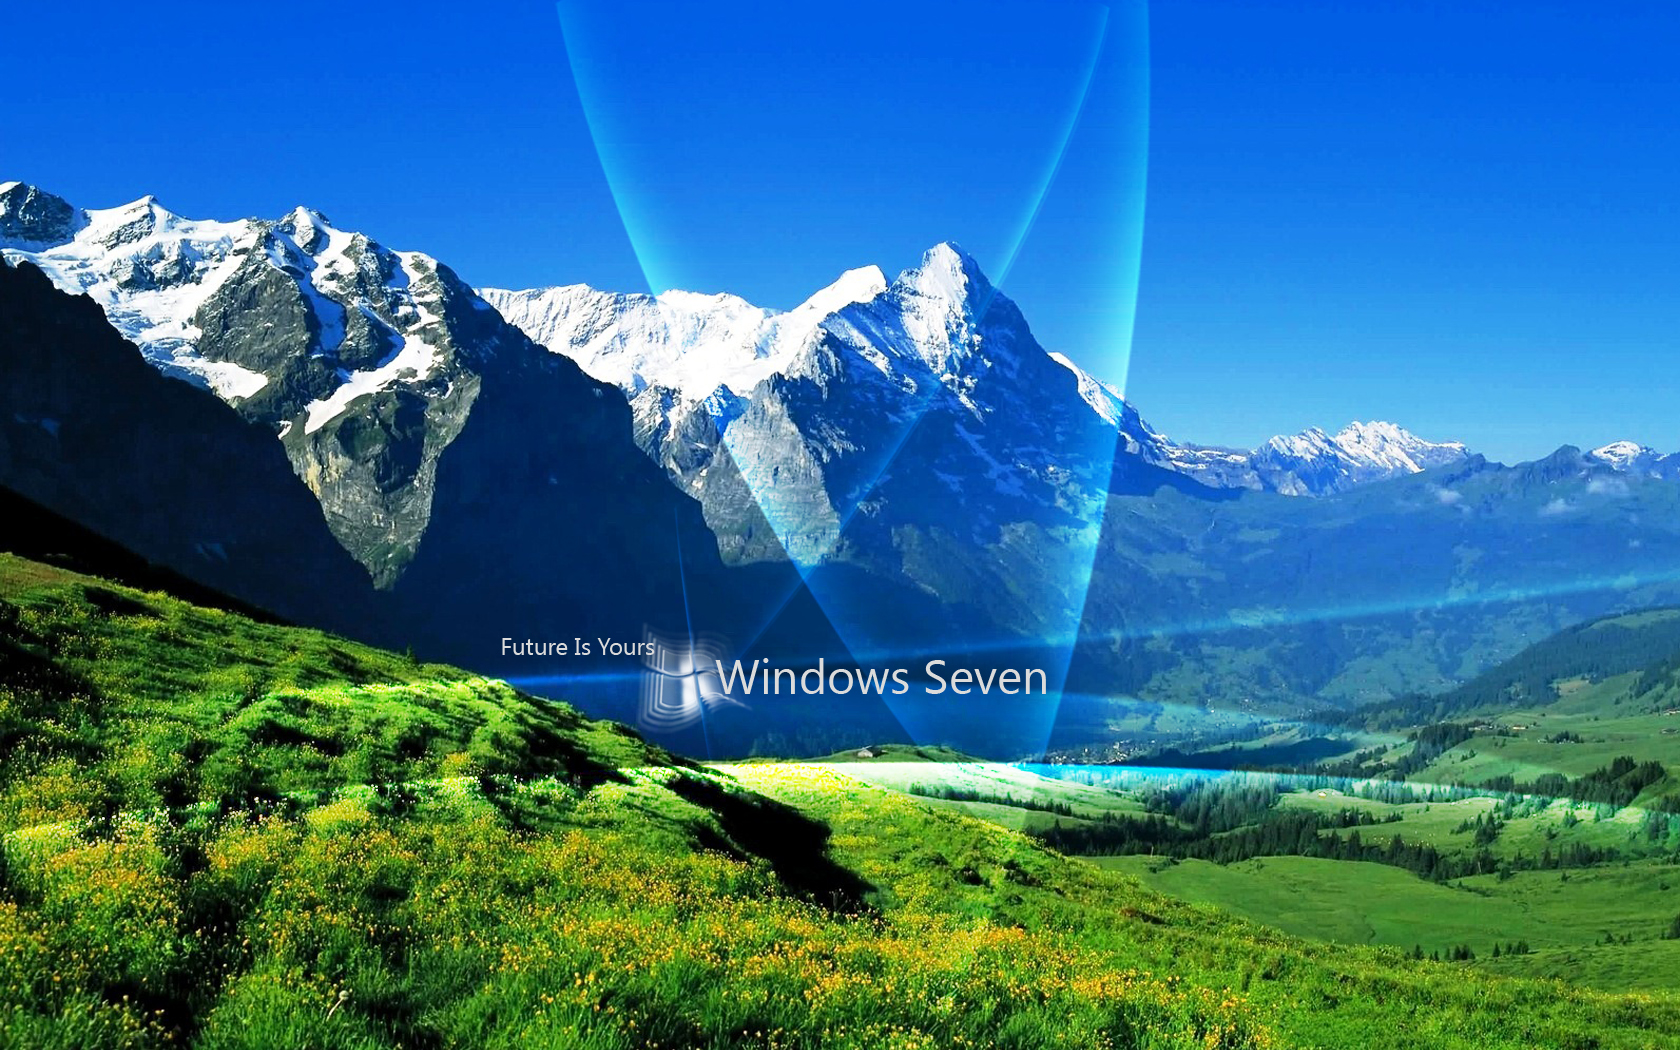 One Comment On Windows 7 Future Is Yours Wallpaper